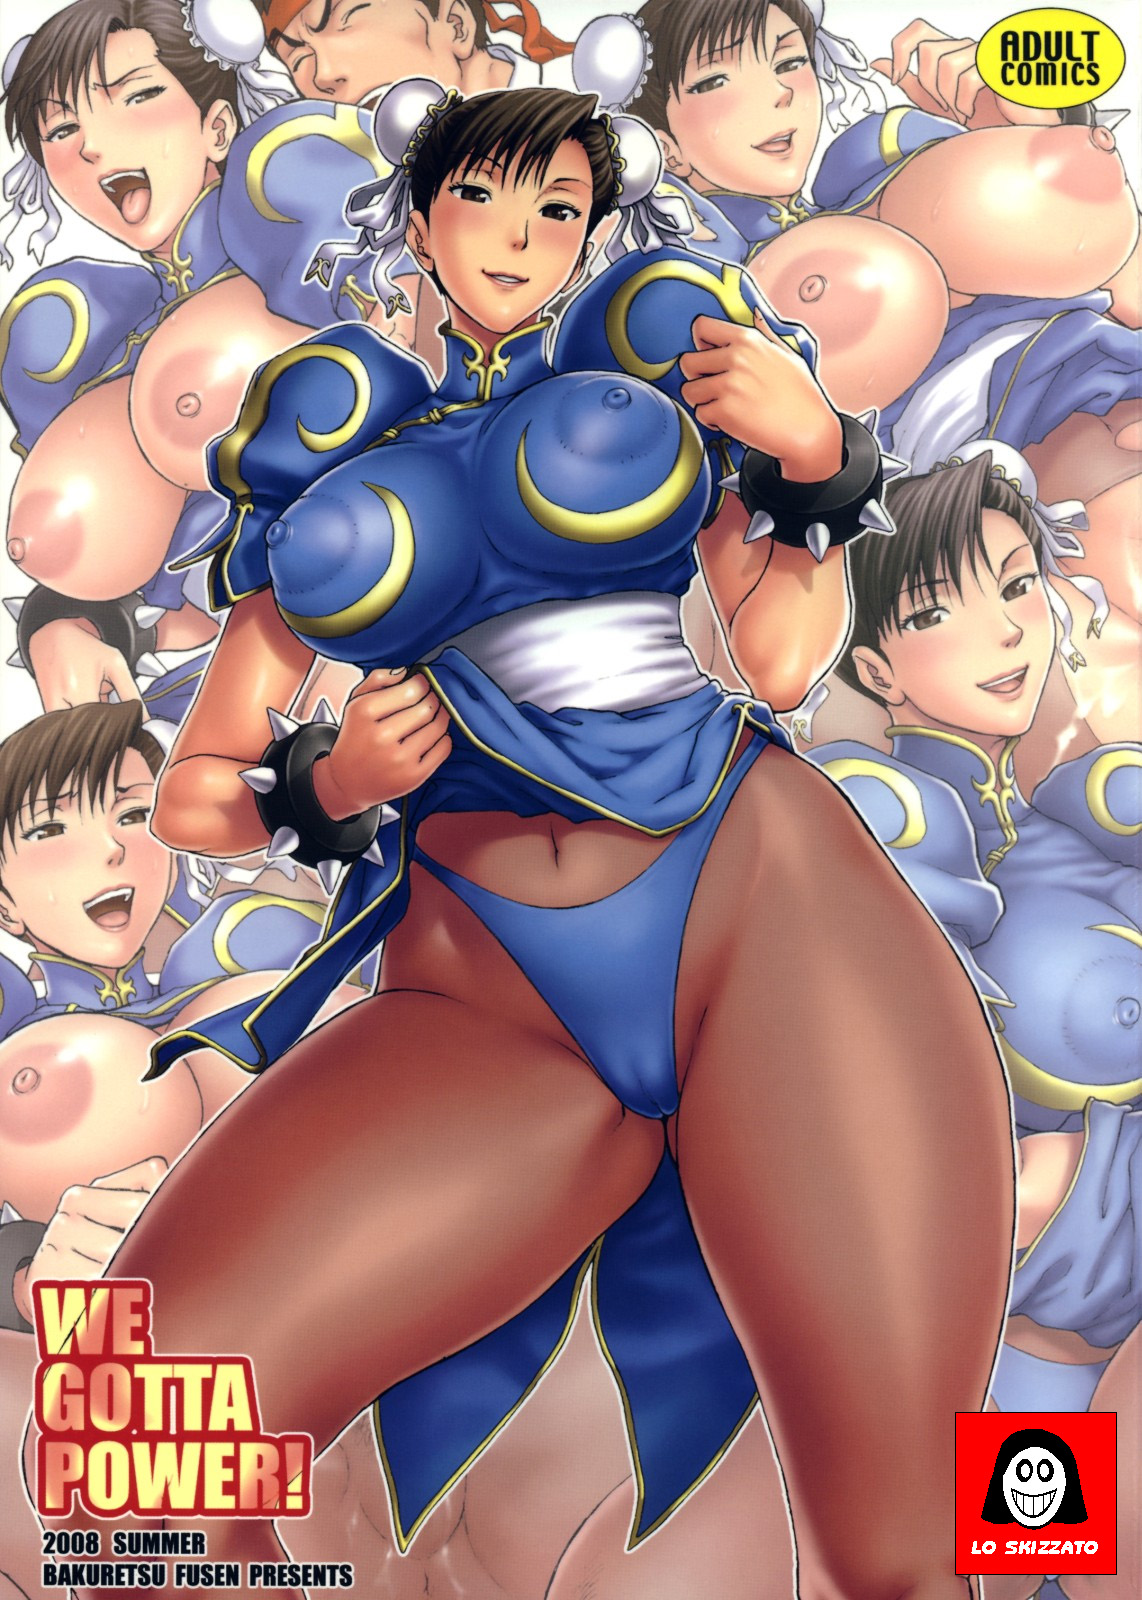 Porn Comics - We Gotta Power! (Street Fighter) porn comics 8 muses